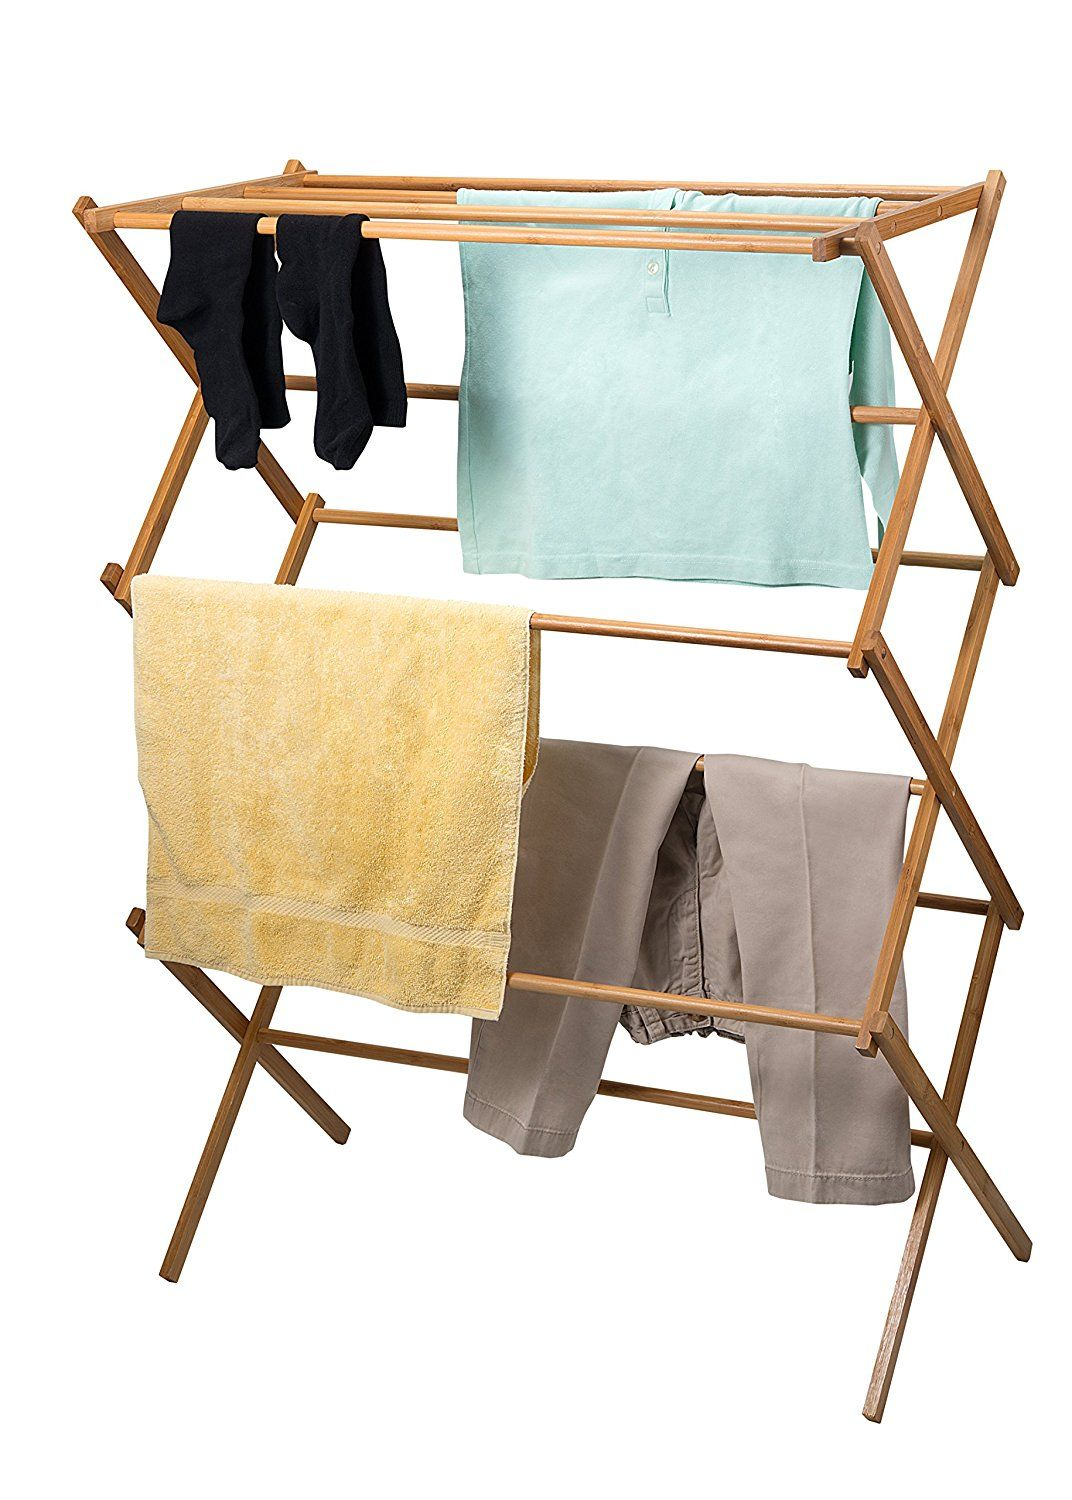 Amazon Com Home It Clothes Drying Rack Bamboo Wooden Clothes Rack Super Quality Cloth Drying St Wooden Clothes Rack Clothes Drying Racks Portable Clothes Rack